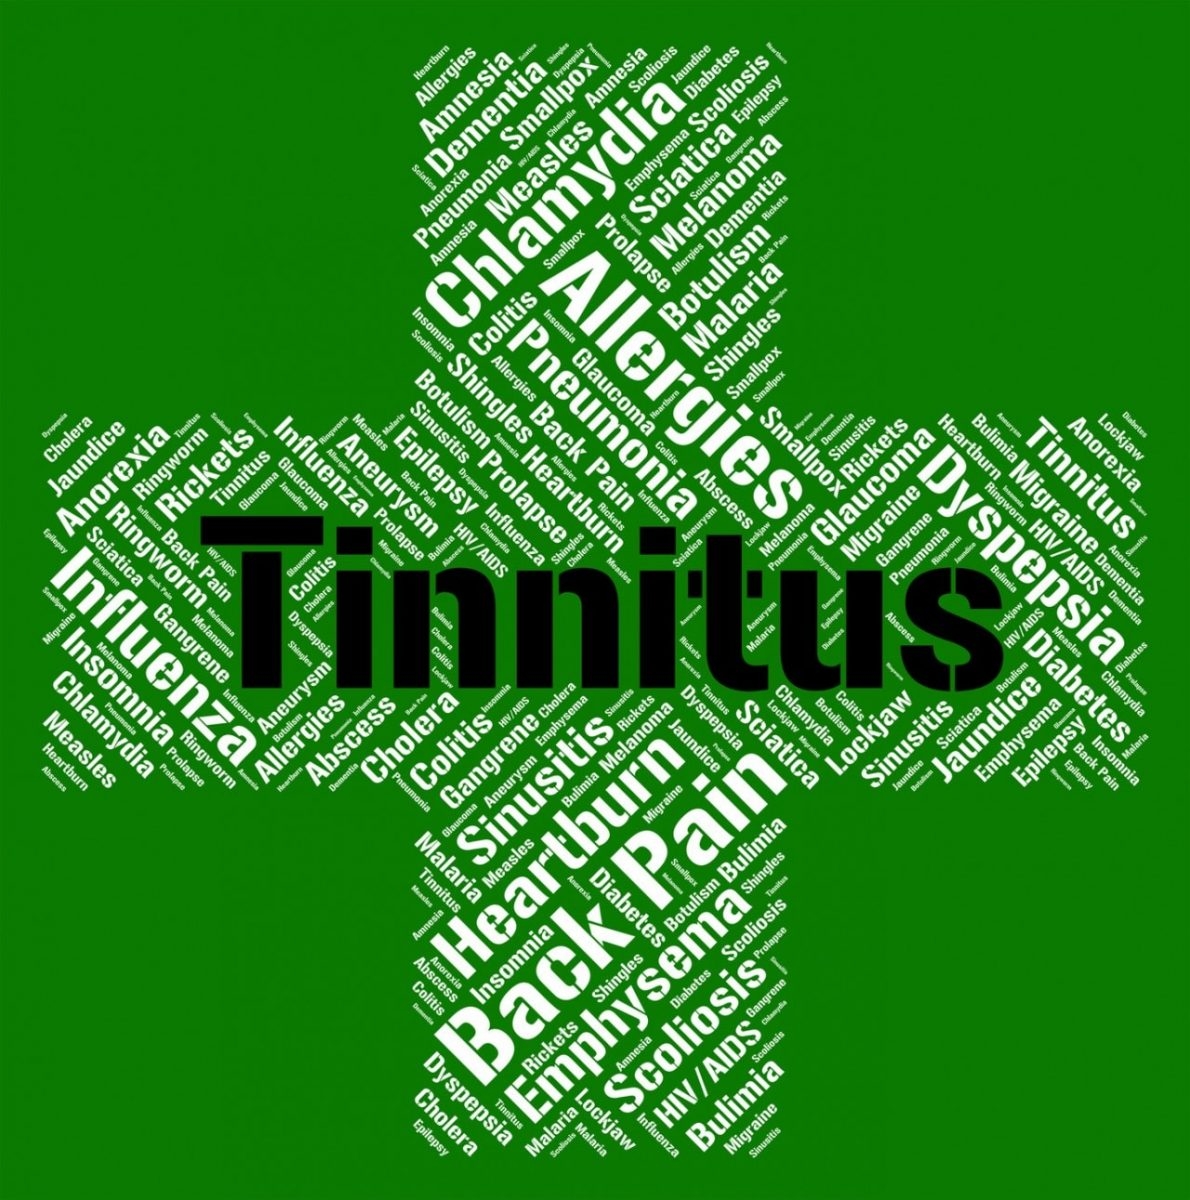 Tinnitus alternative Behandlungen